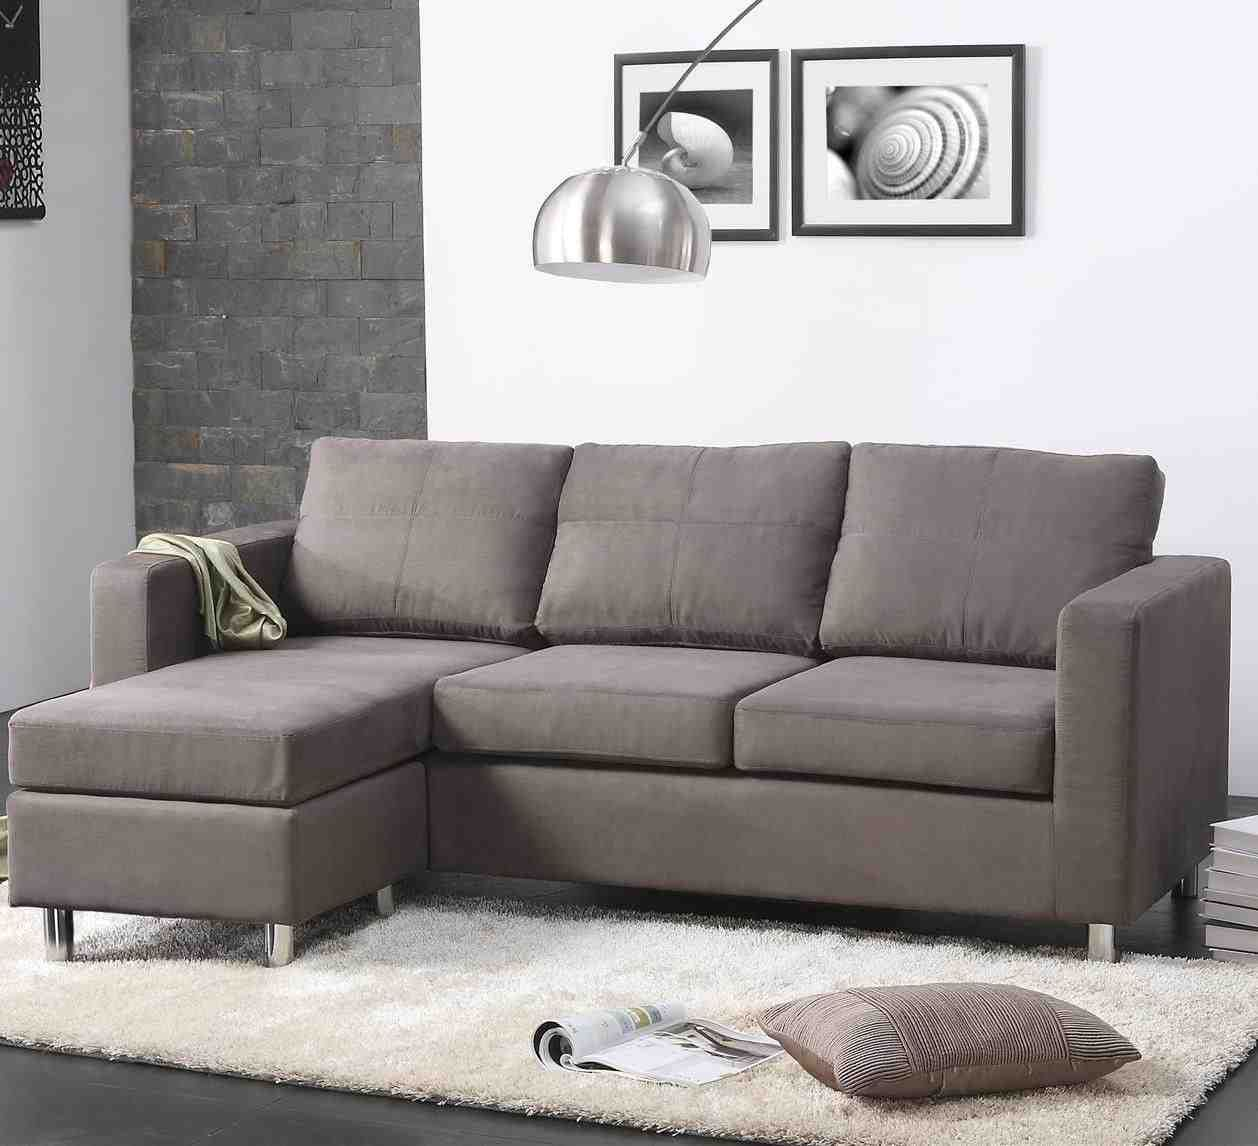 Small L Shaped Sectional Sofa Small Sectional Sofa Sofas For Small Spaces Contemporary Sectional Sofa